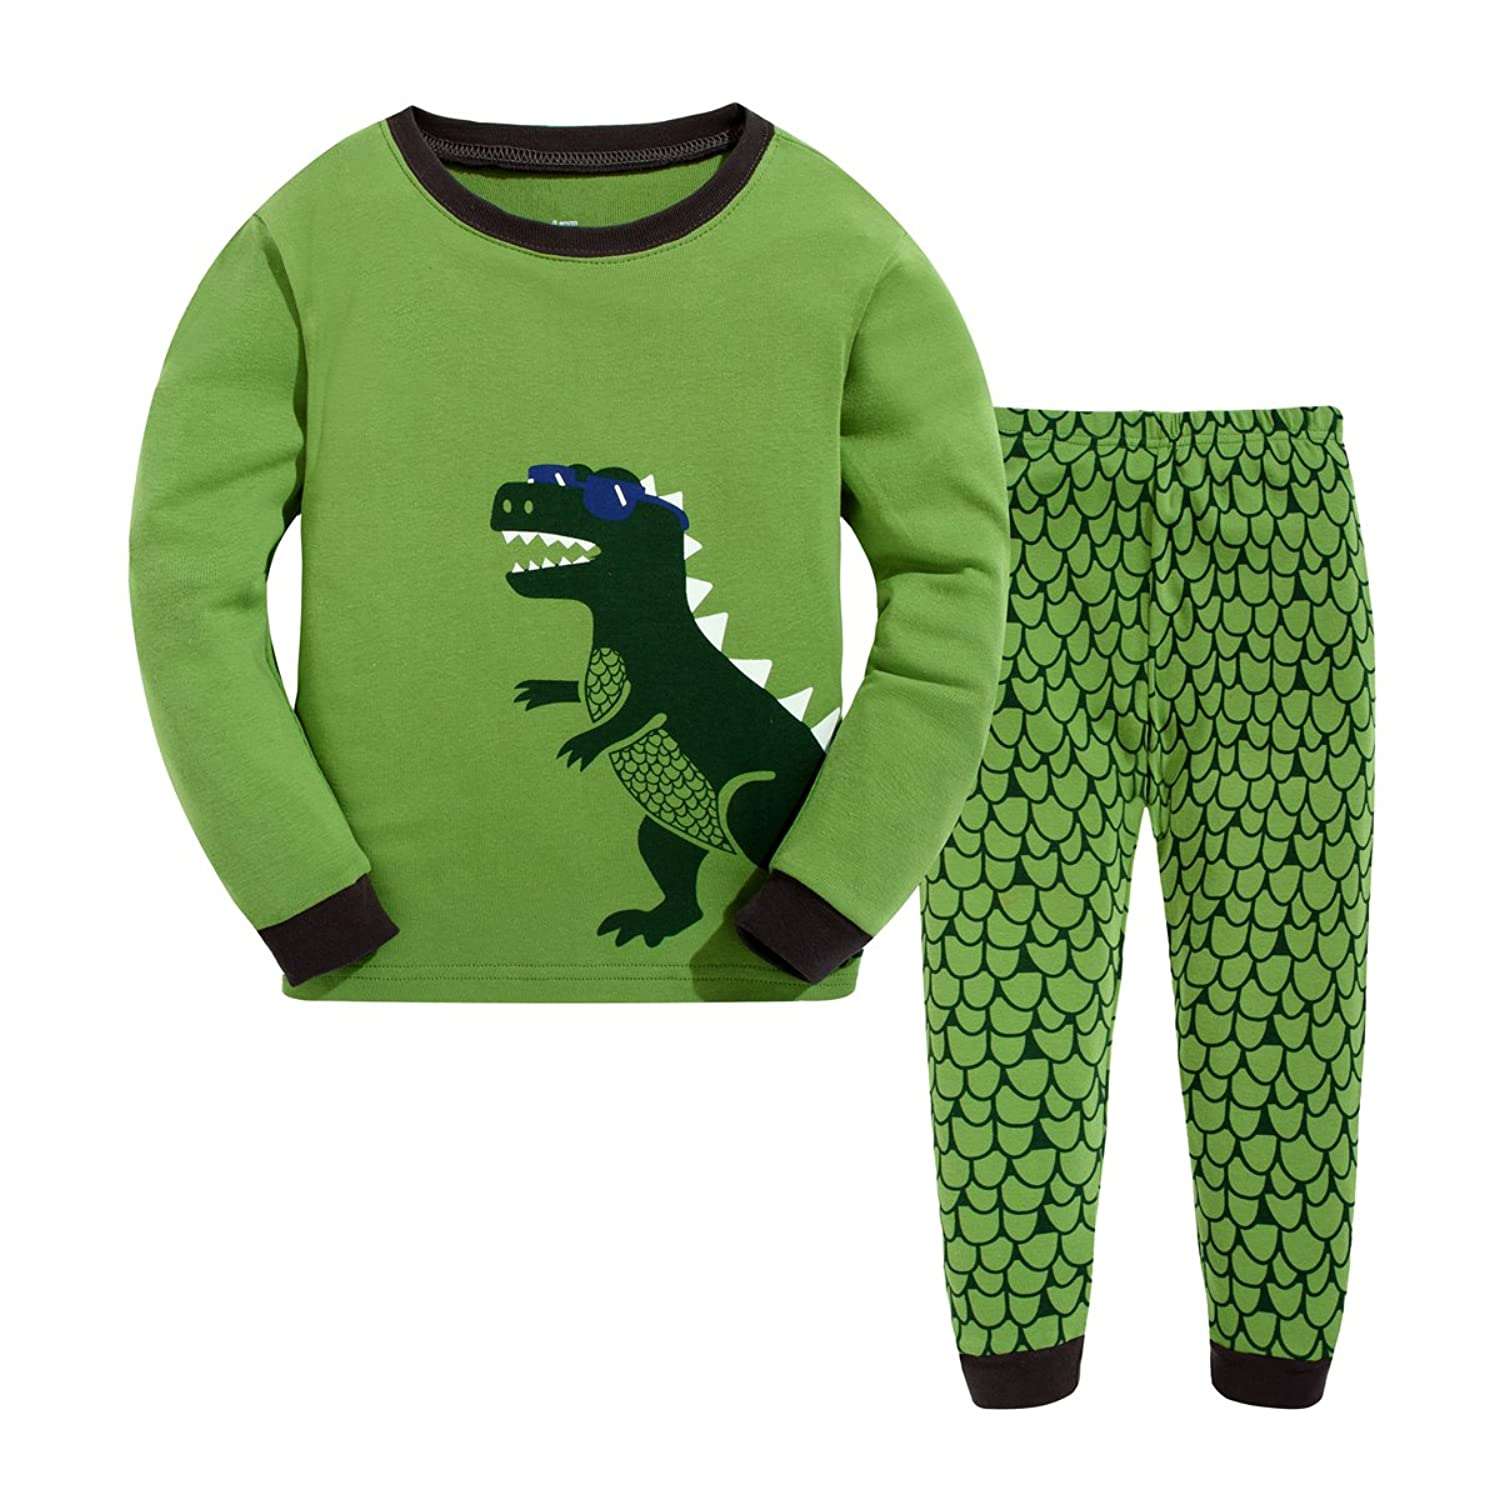 boys sleepwear and robes com hugbug toddler boys cute dinosaur pajamas set 2 7t